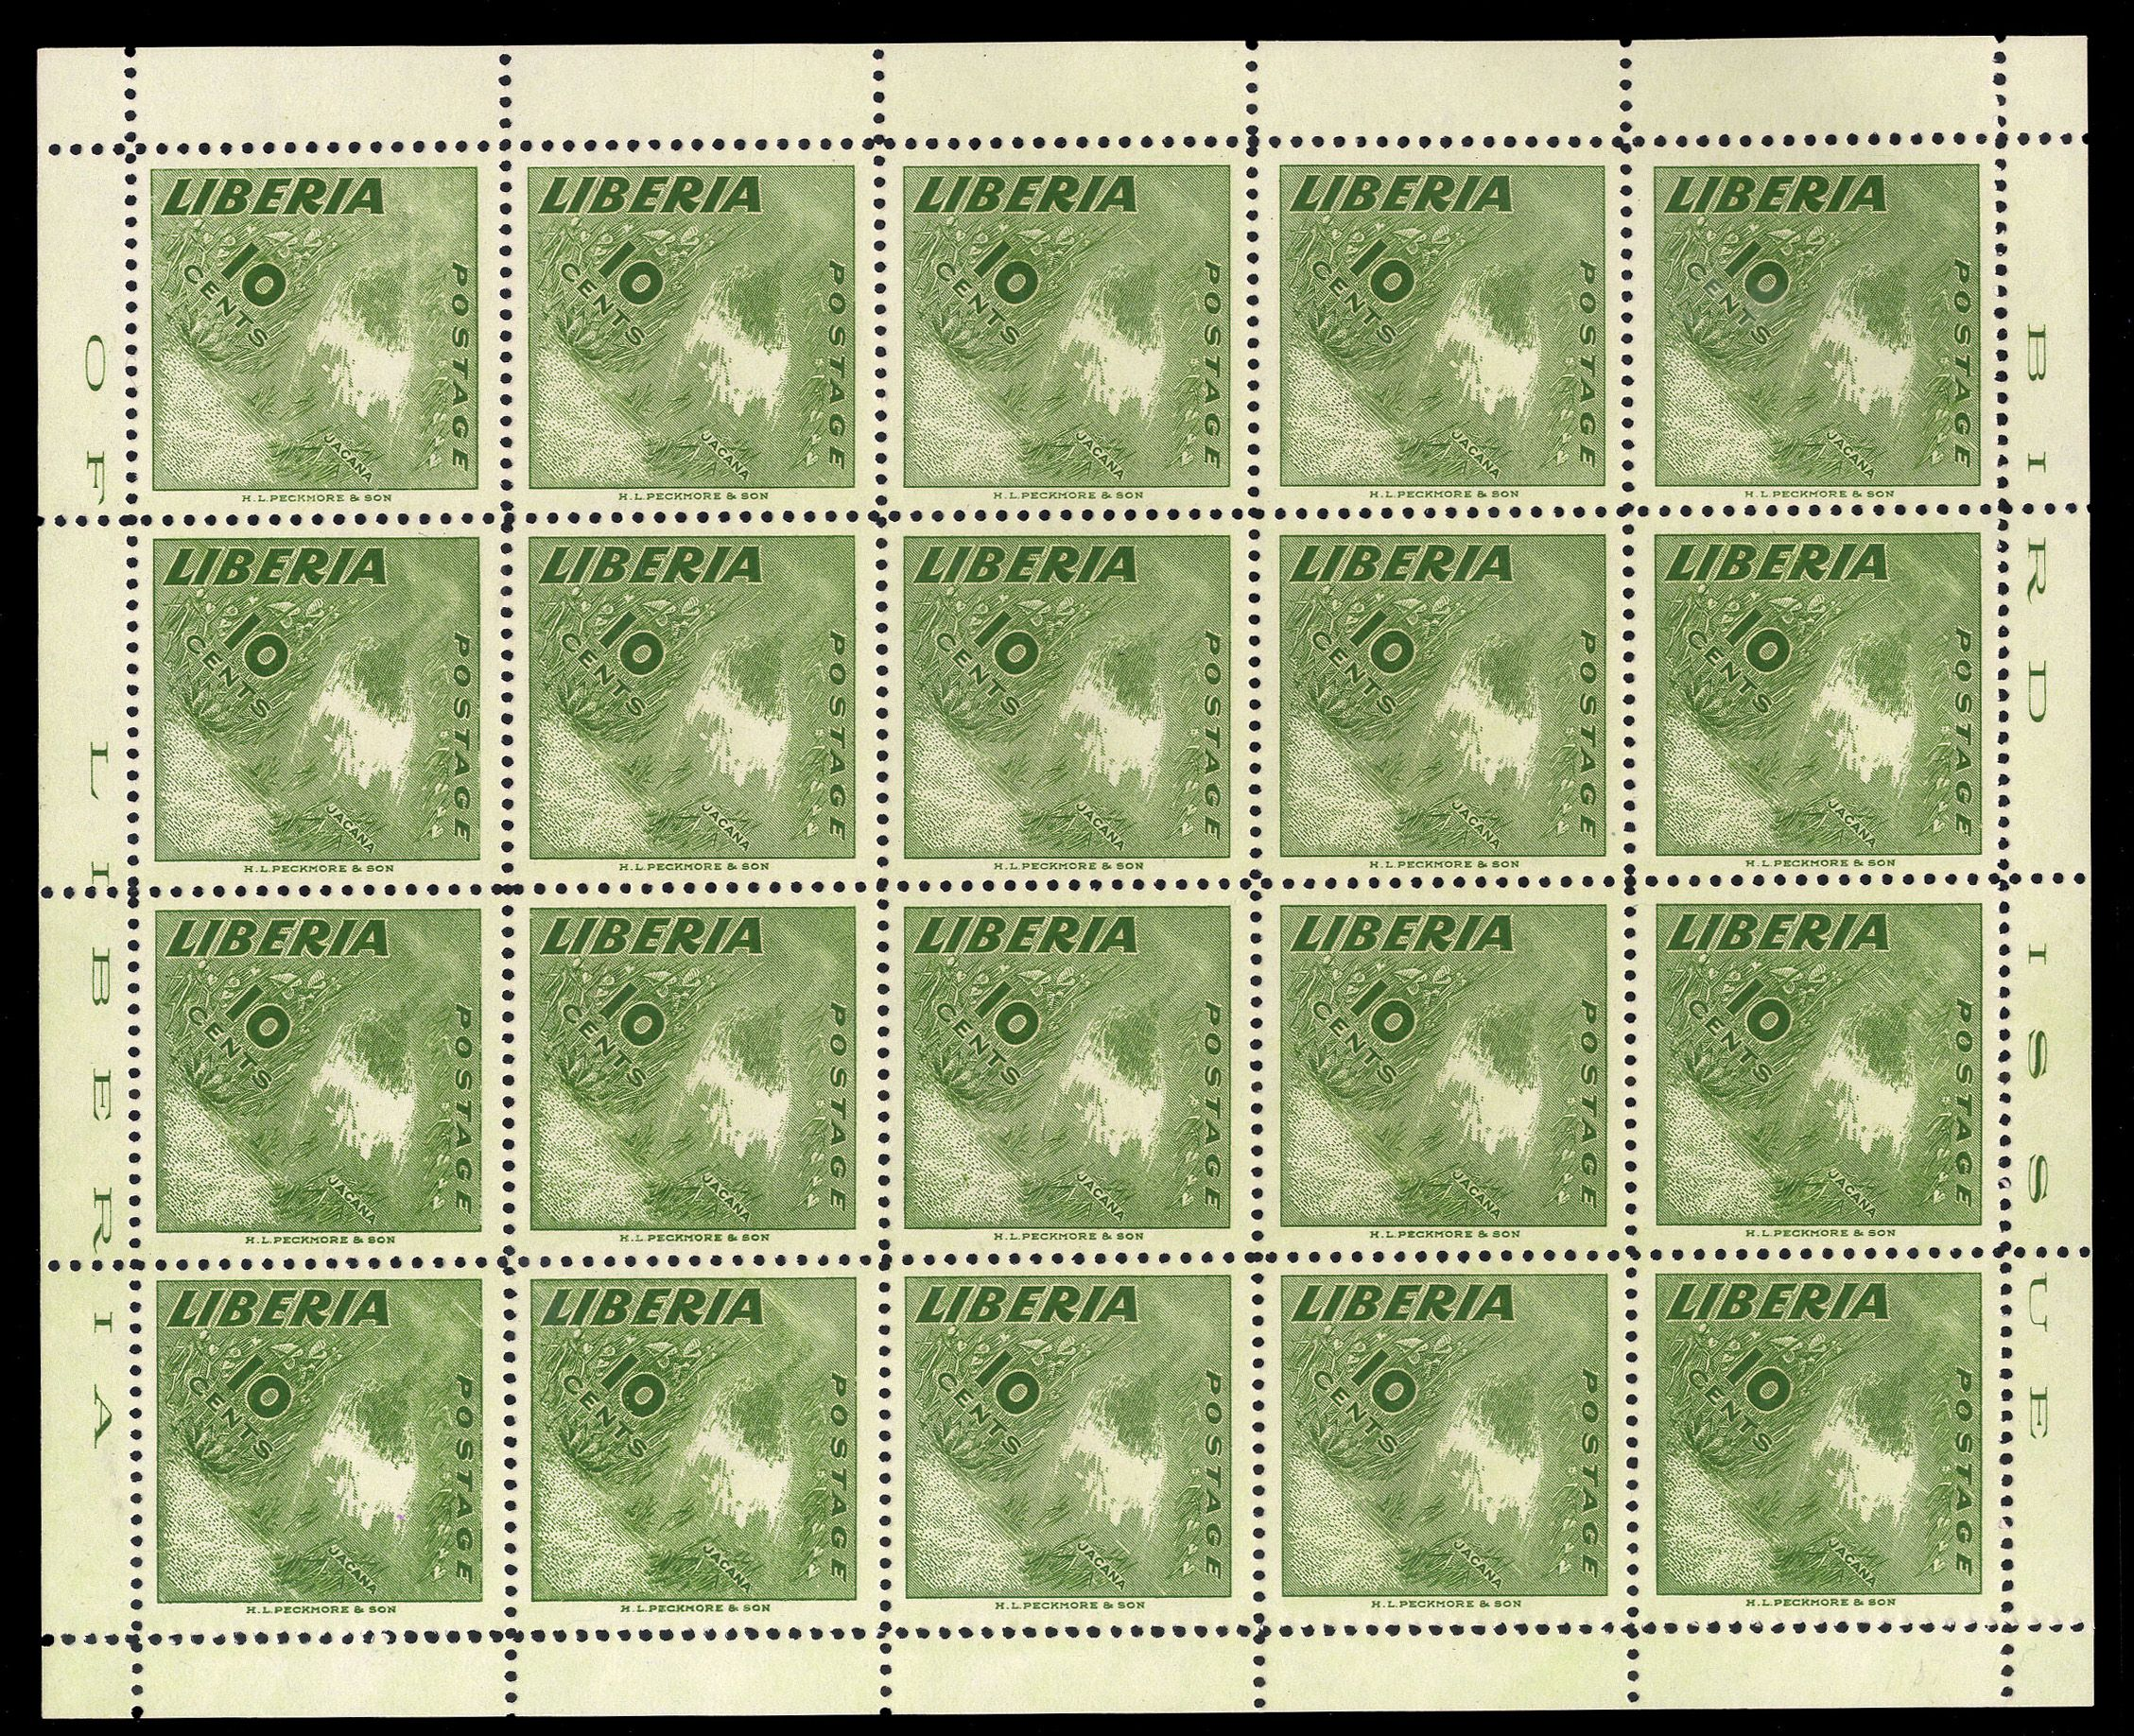 Cherrystone philatelic auction lots of rare stamps $600 00 | stamps